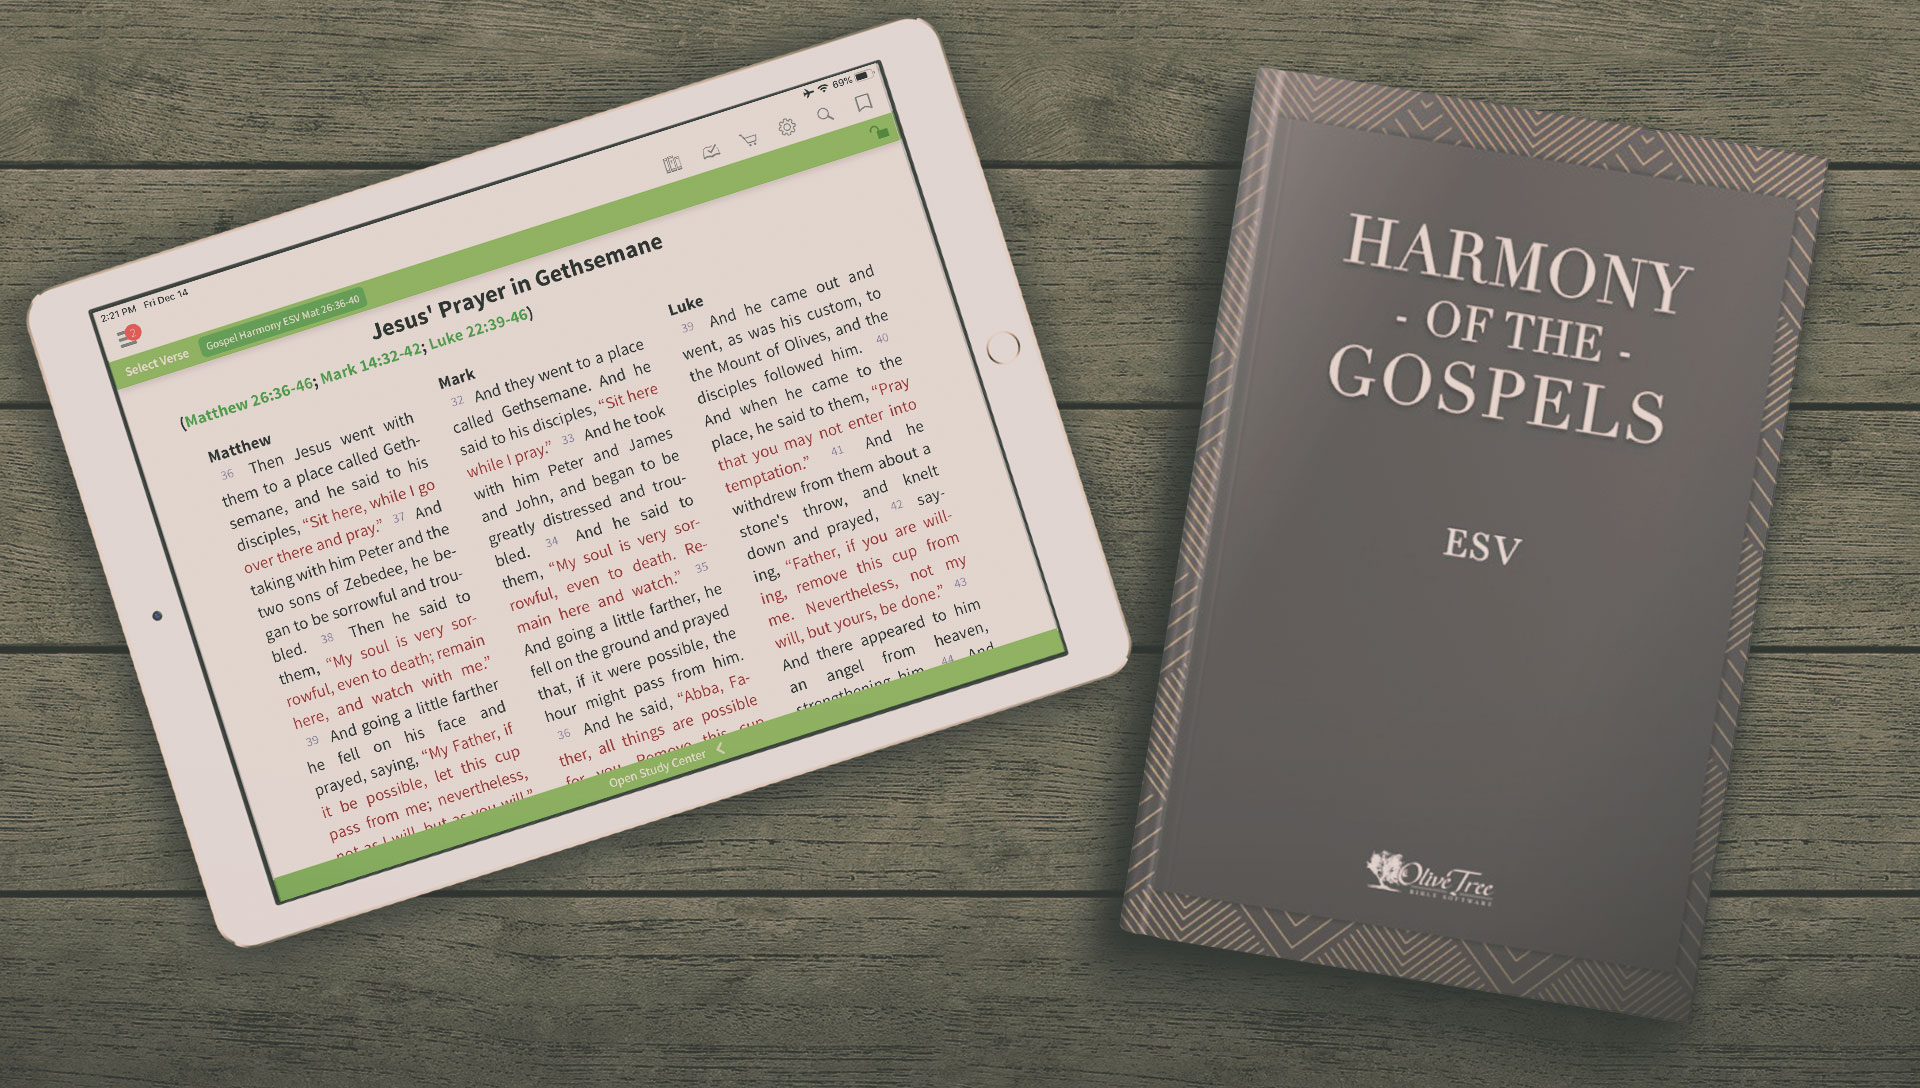 Using Gospel Harmonies - Olive Tree Blog